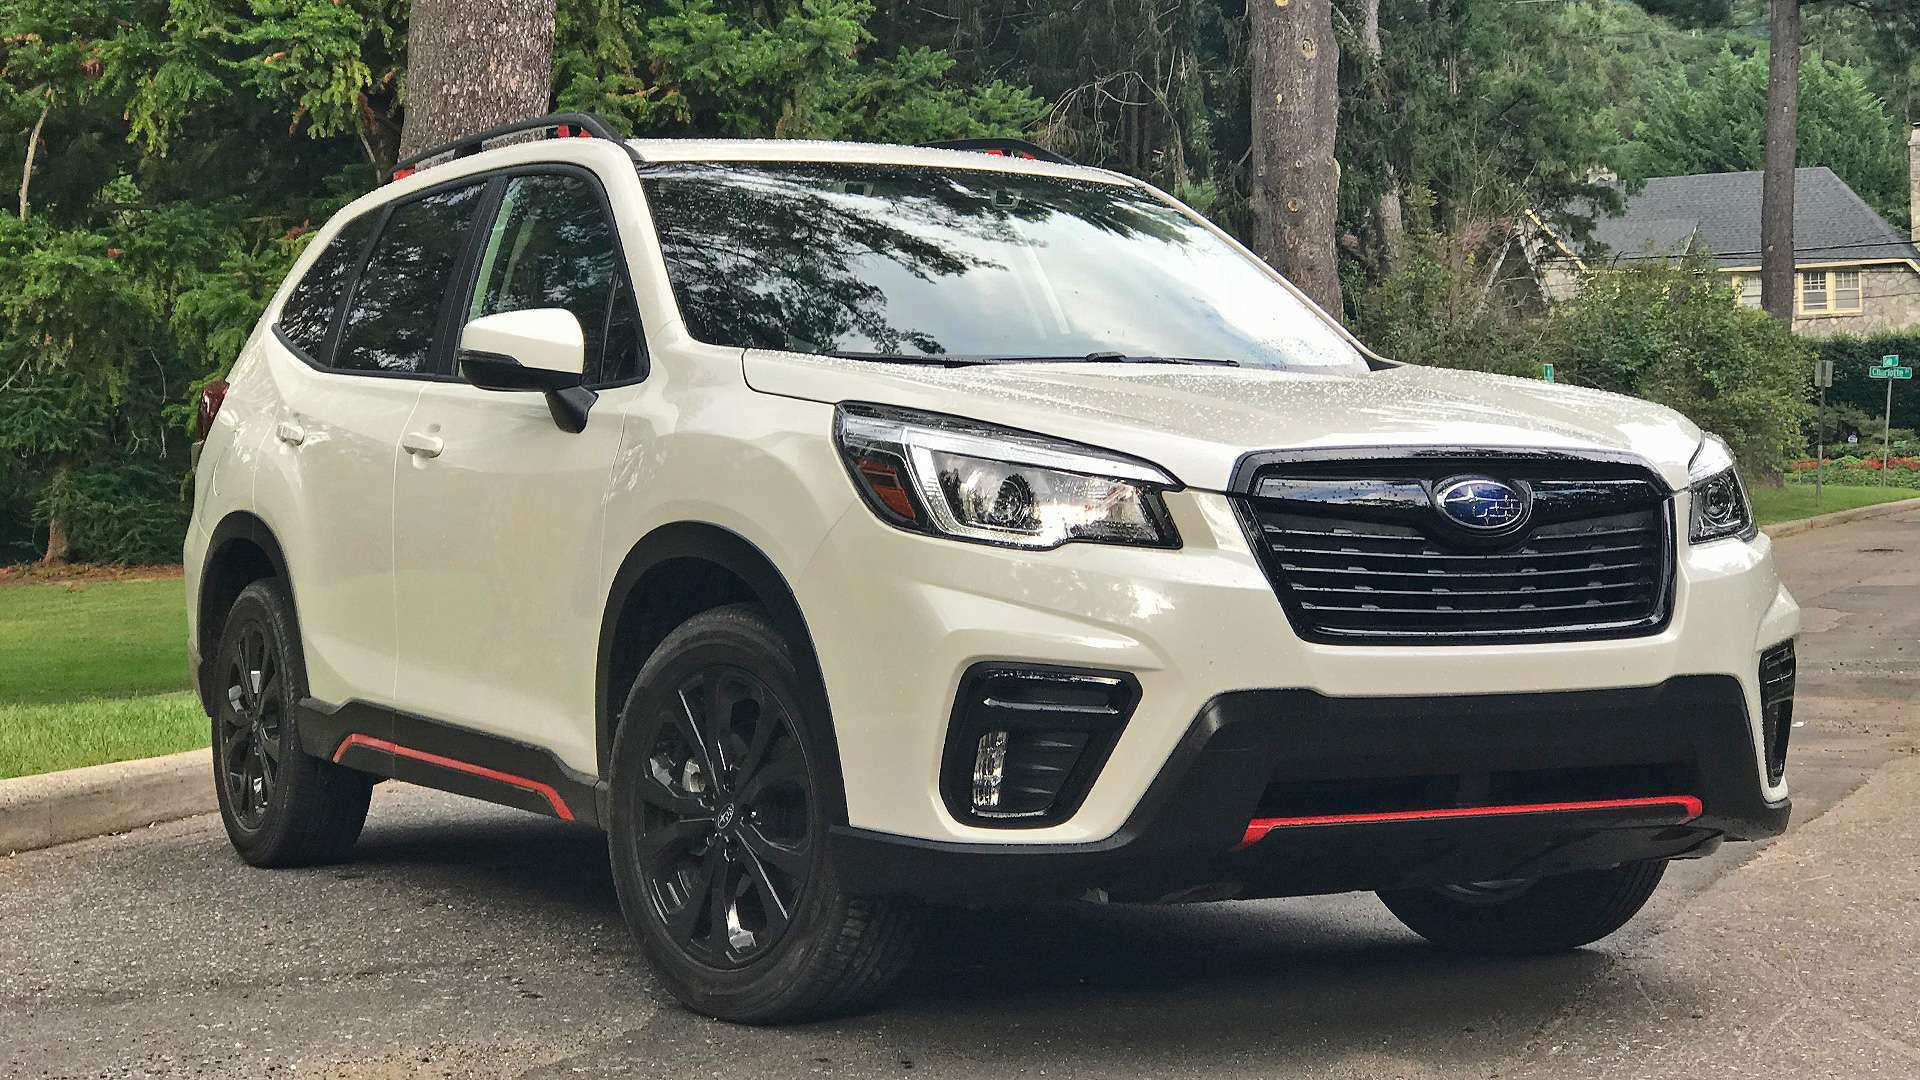 80 Concept of 2019 Subaru Forester Debut New Review for 2019 Subaru Forester Debut